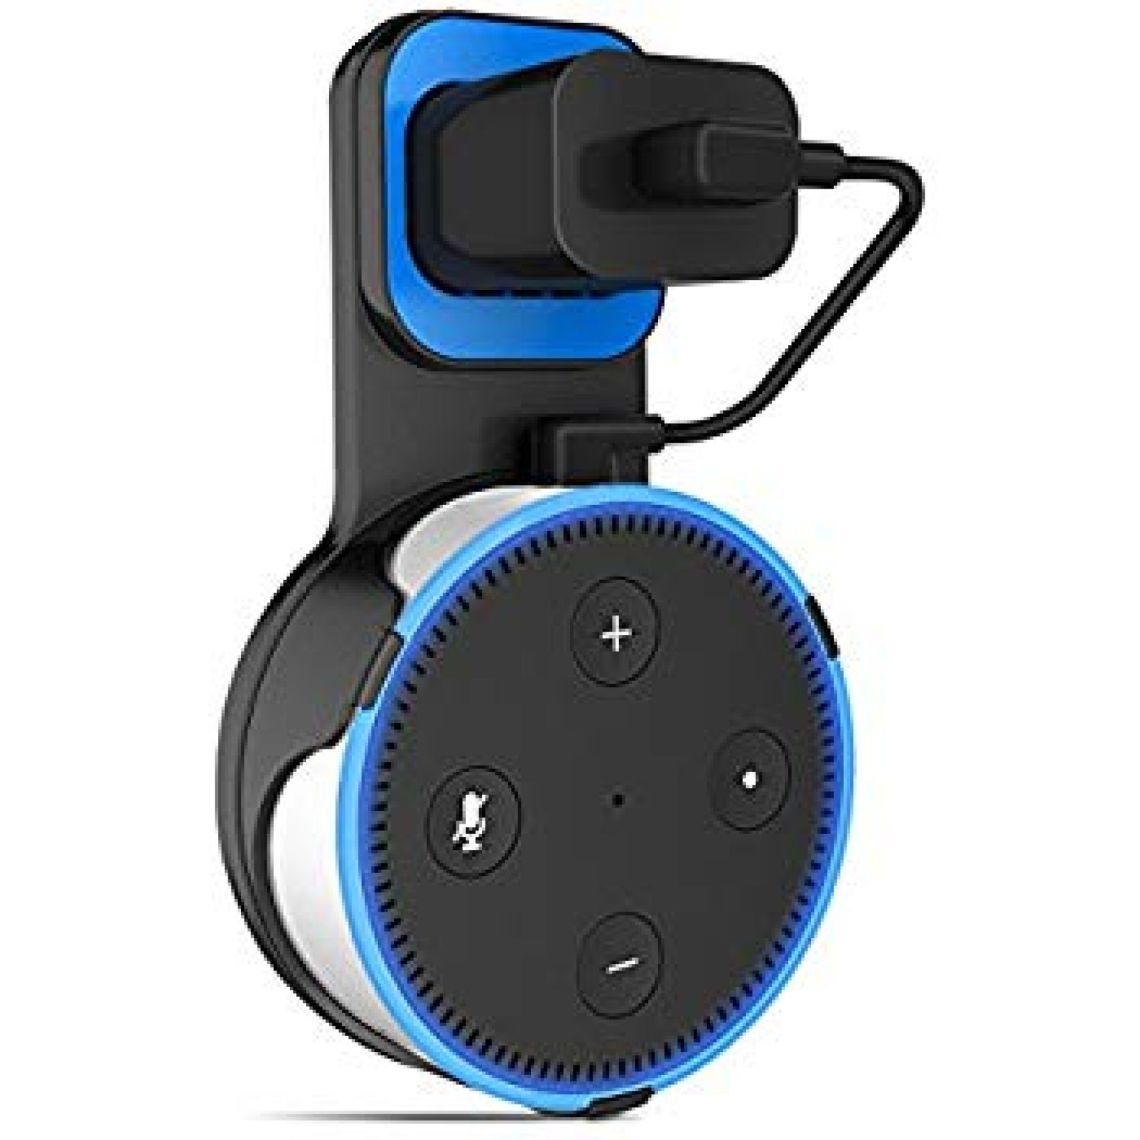 Amazon.com: EIVOTOR Outlet Wall Mount Hanger Stand for Dot 2nd Generation & Other Round Voice Assistants for Smart Home Speakers Kitchen, Bathroom, Bedroom - Black: Home Audio & Theater